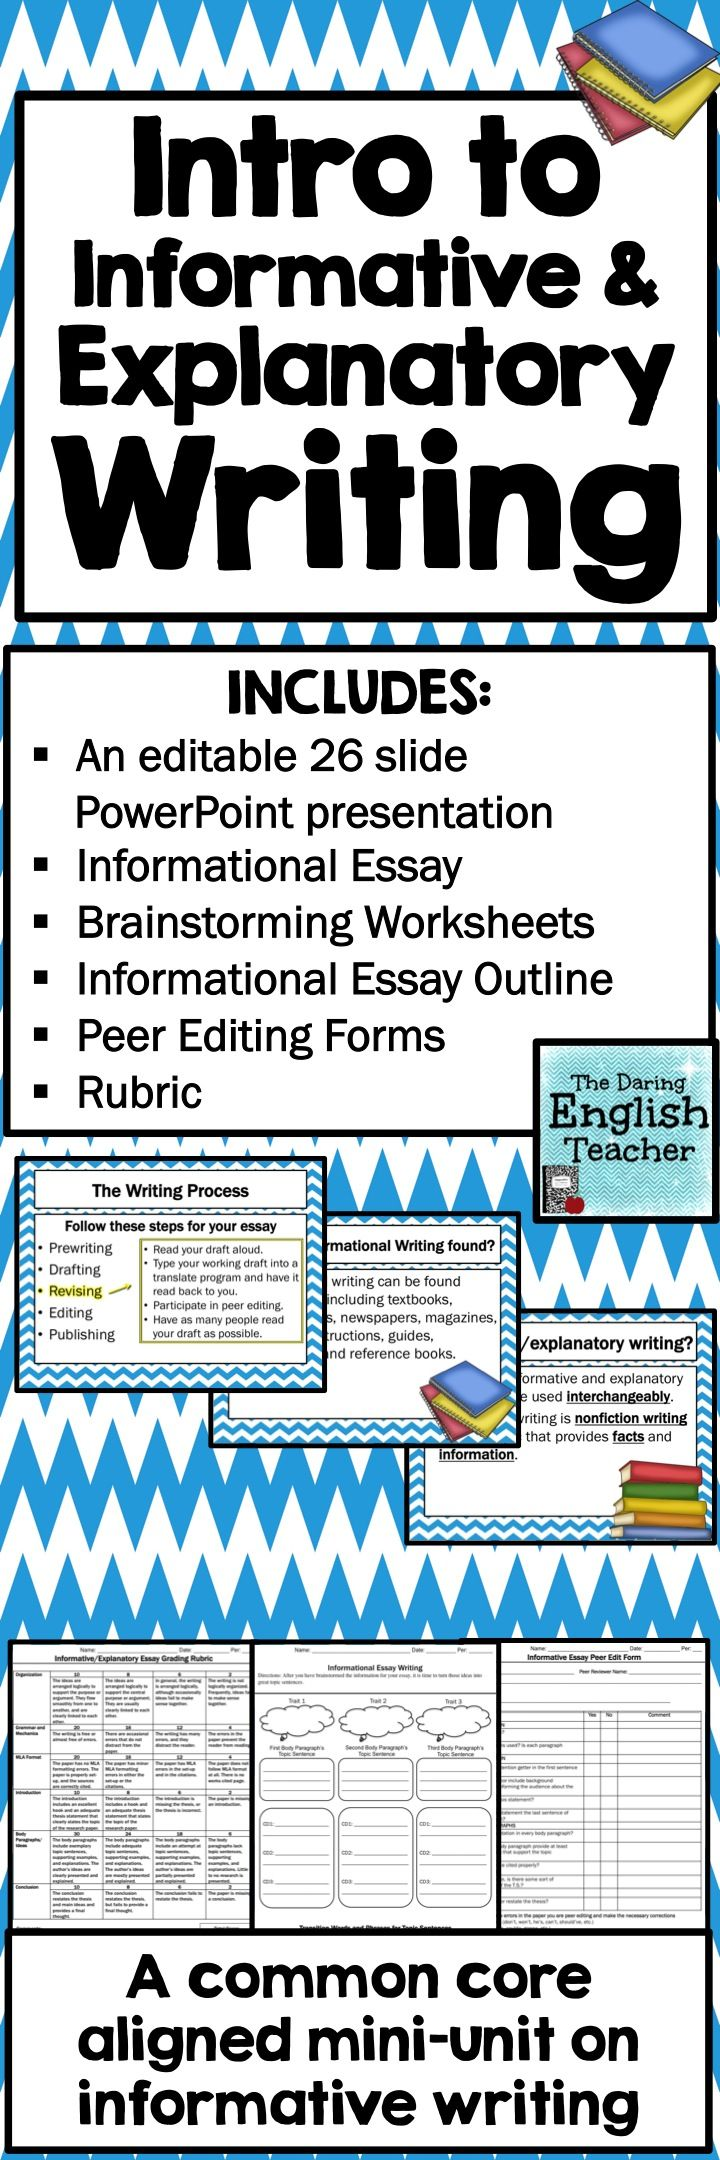 Teach your students about informative and explanatory writing with this CCSS aligned mini-unit. It is ideal for grades 7-10, and it includes an editable, 26 slide PowerPoint presentation, and informative essay handout, peer edit worksheet, and a rubric.